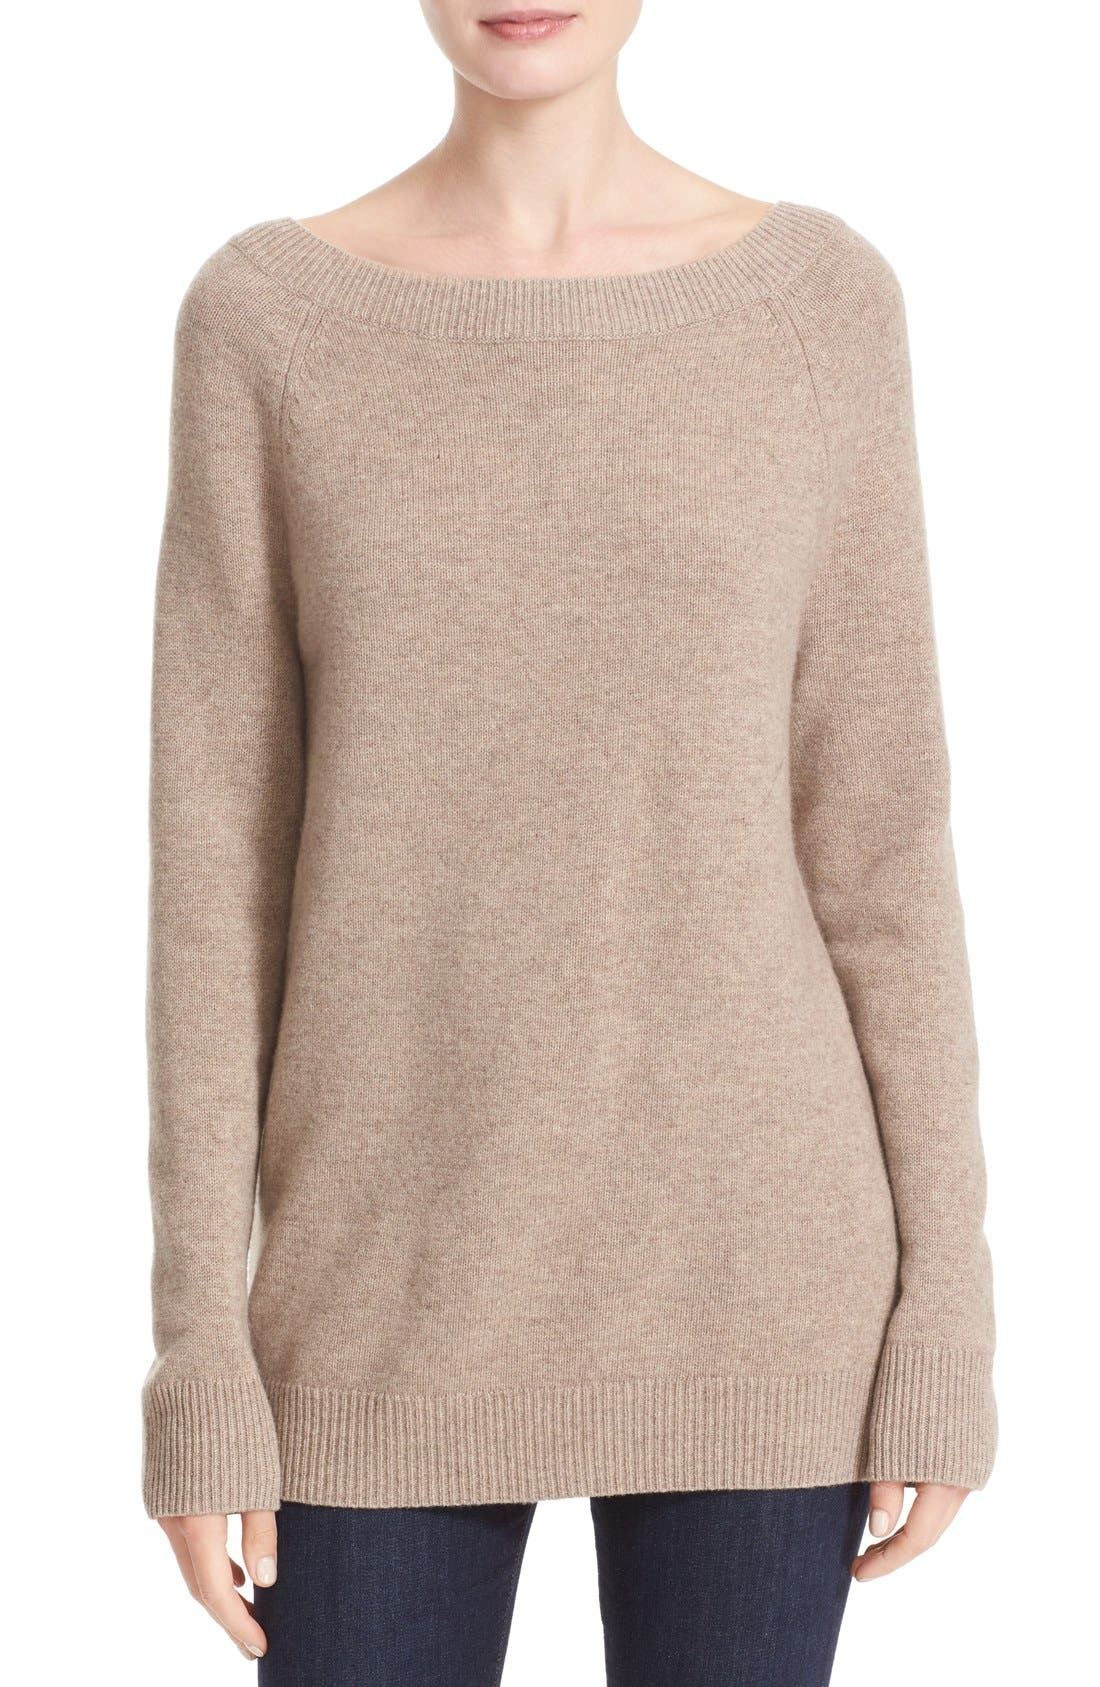 Alternate Image 1 Selected - Equipment Cody Wool & Cashmere Boatneck Sweater (Nordstrom Exclusive)